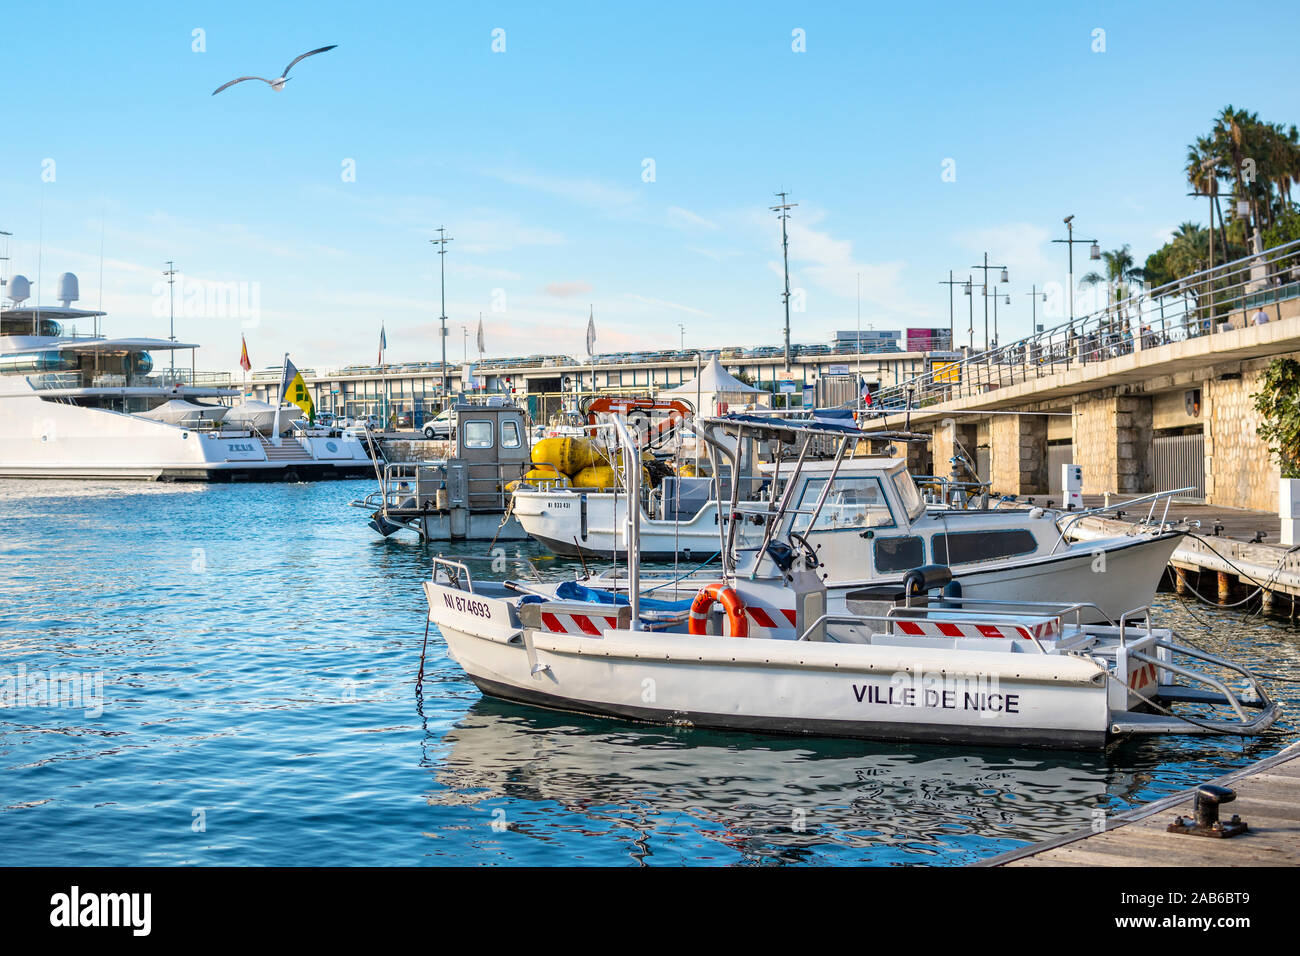 A seagull flies over the boats docked at the Old Port in the Mediterranean city of Nice France on the French Riviera. Stock Photo